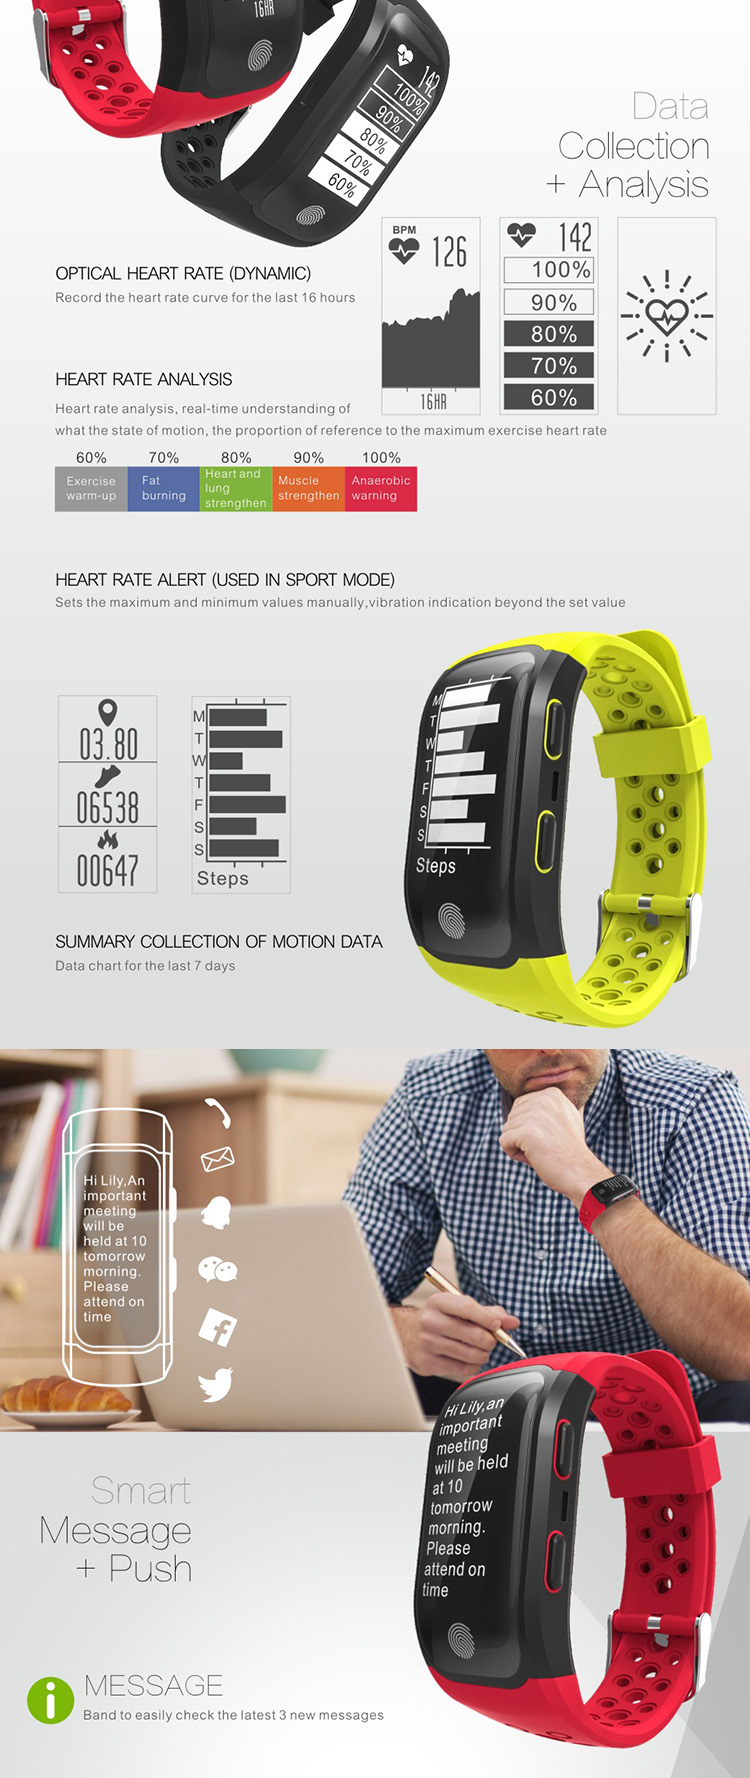 IP68 Waterproof Swimming Sport GPS Smartband with heart rate monitor